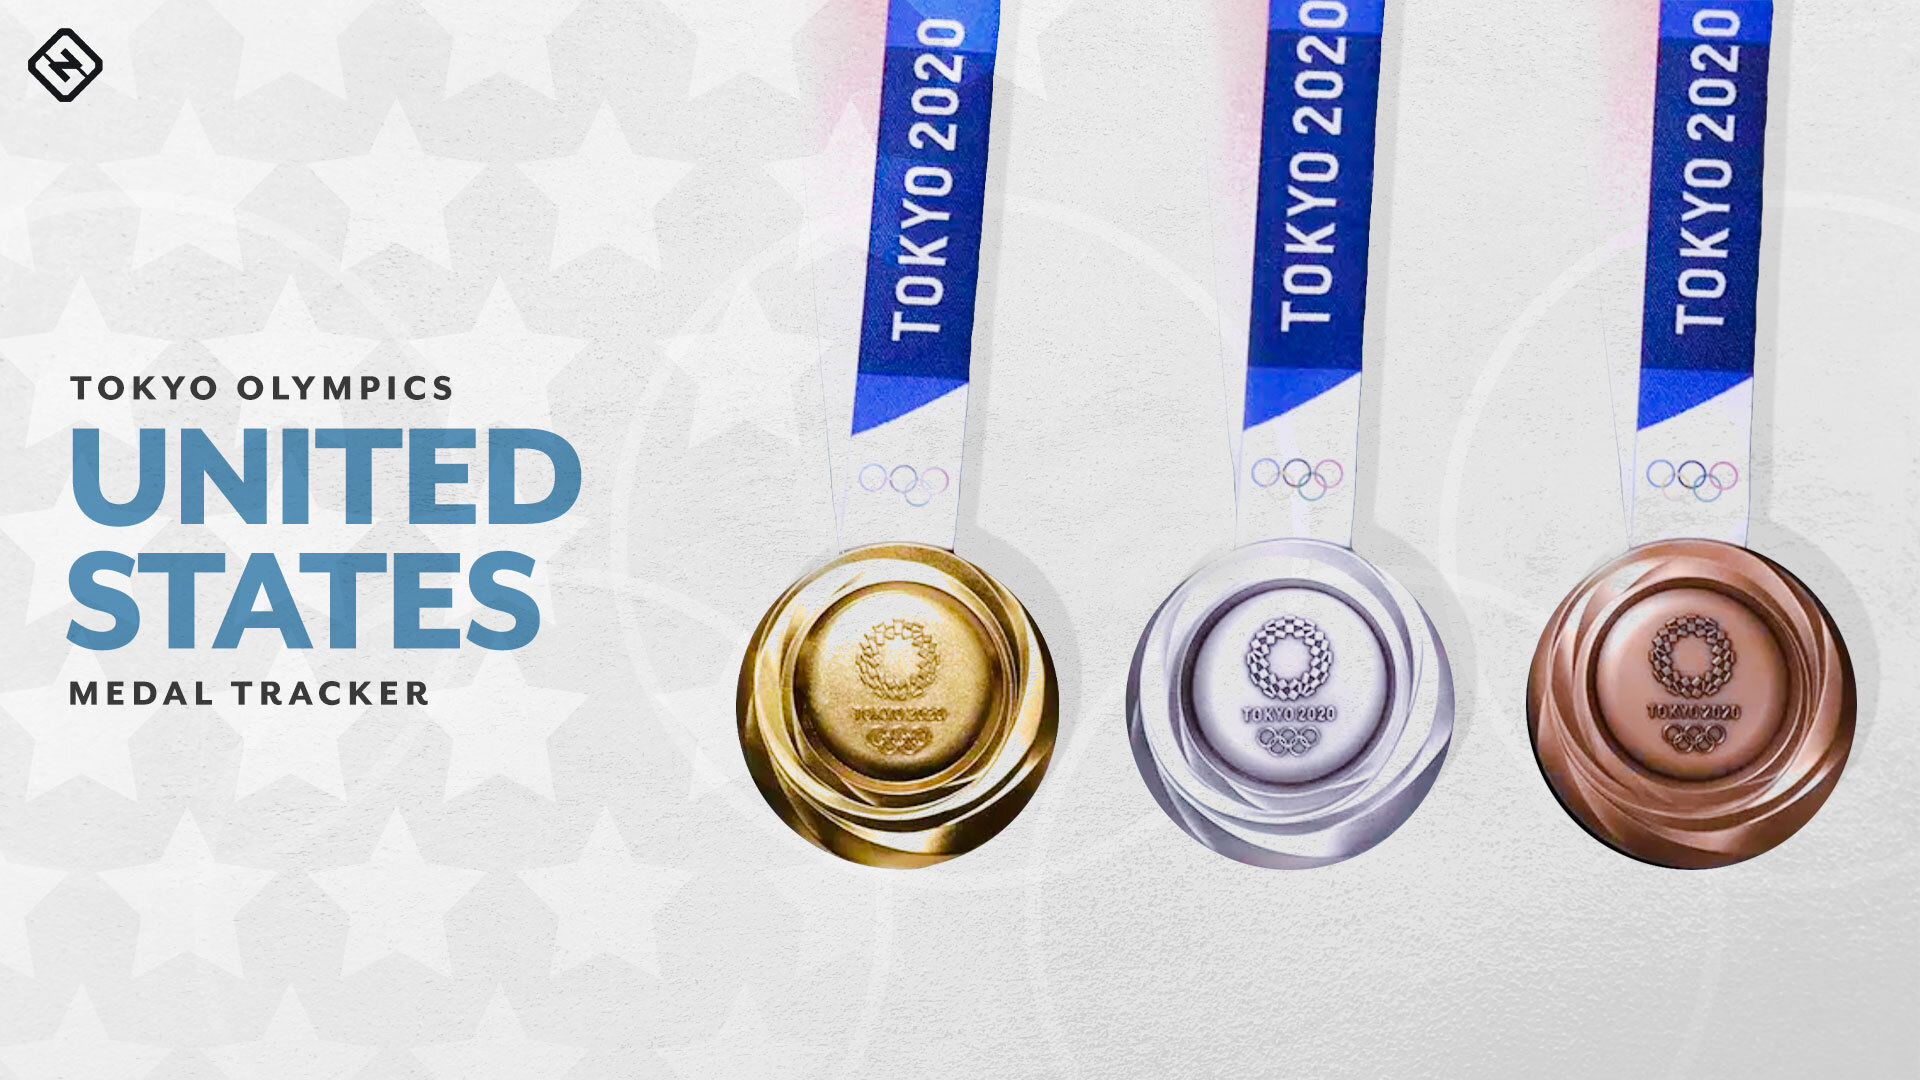 How many gold medals did USA have? Complete list of 2021 Olympic medalists from United States